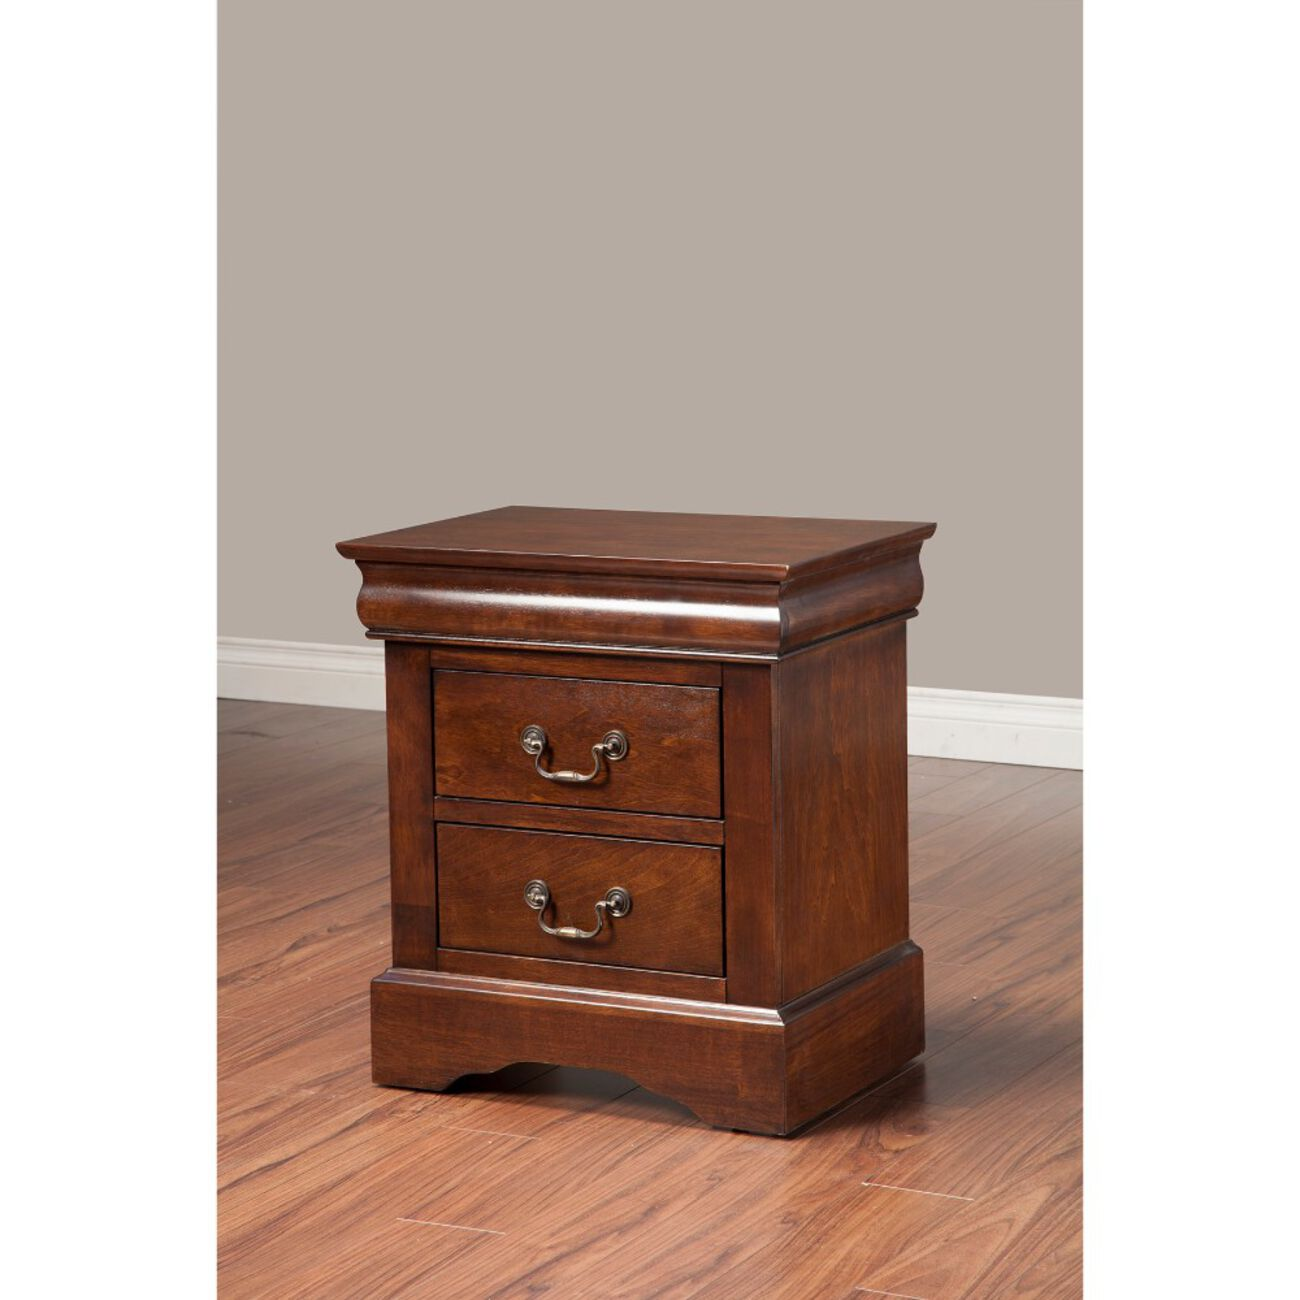 Rubberwood 2 Drawer Nightstand With Antique Handles Brown